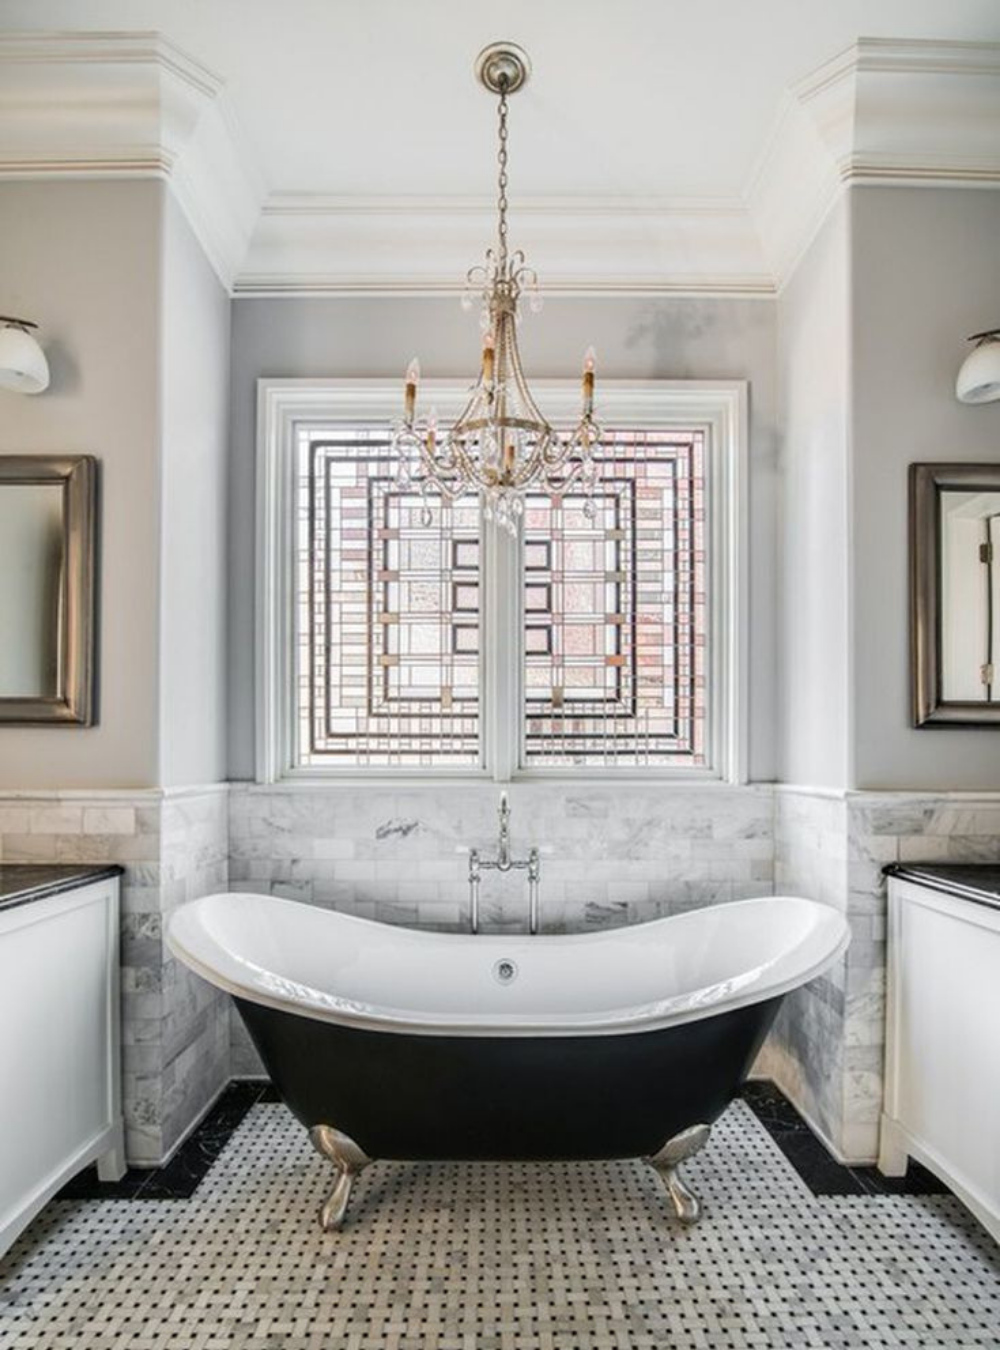 HOME DECOR: 5 LUXURIOUS GREY BATHROOMS THAT WILL FIT EVERYBODY'S TASTE  luxurious grey bathrooms Home Decor: 5 Luxurious Grey Bathrooms That Will Fit Everybody's Taste Design sem nome 4 2